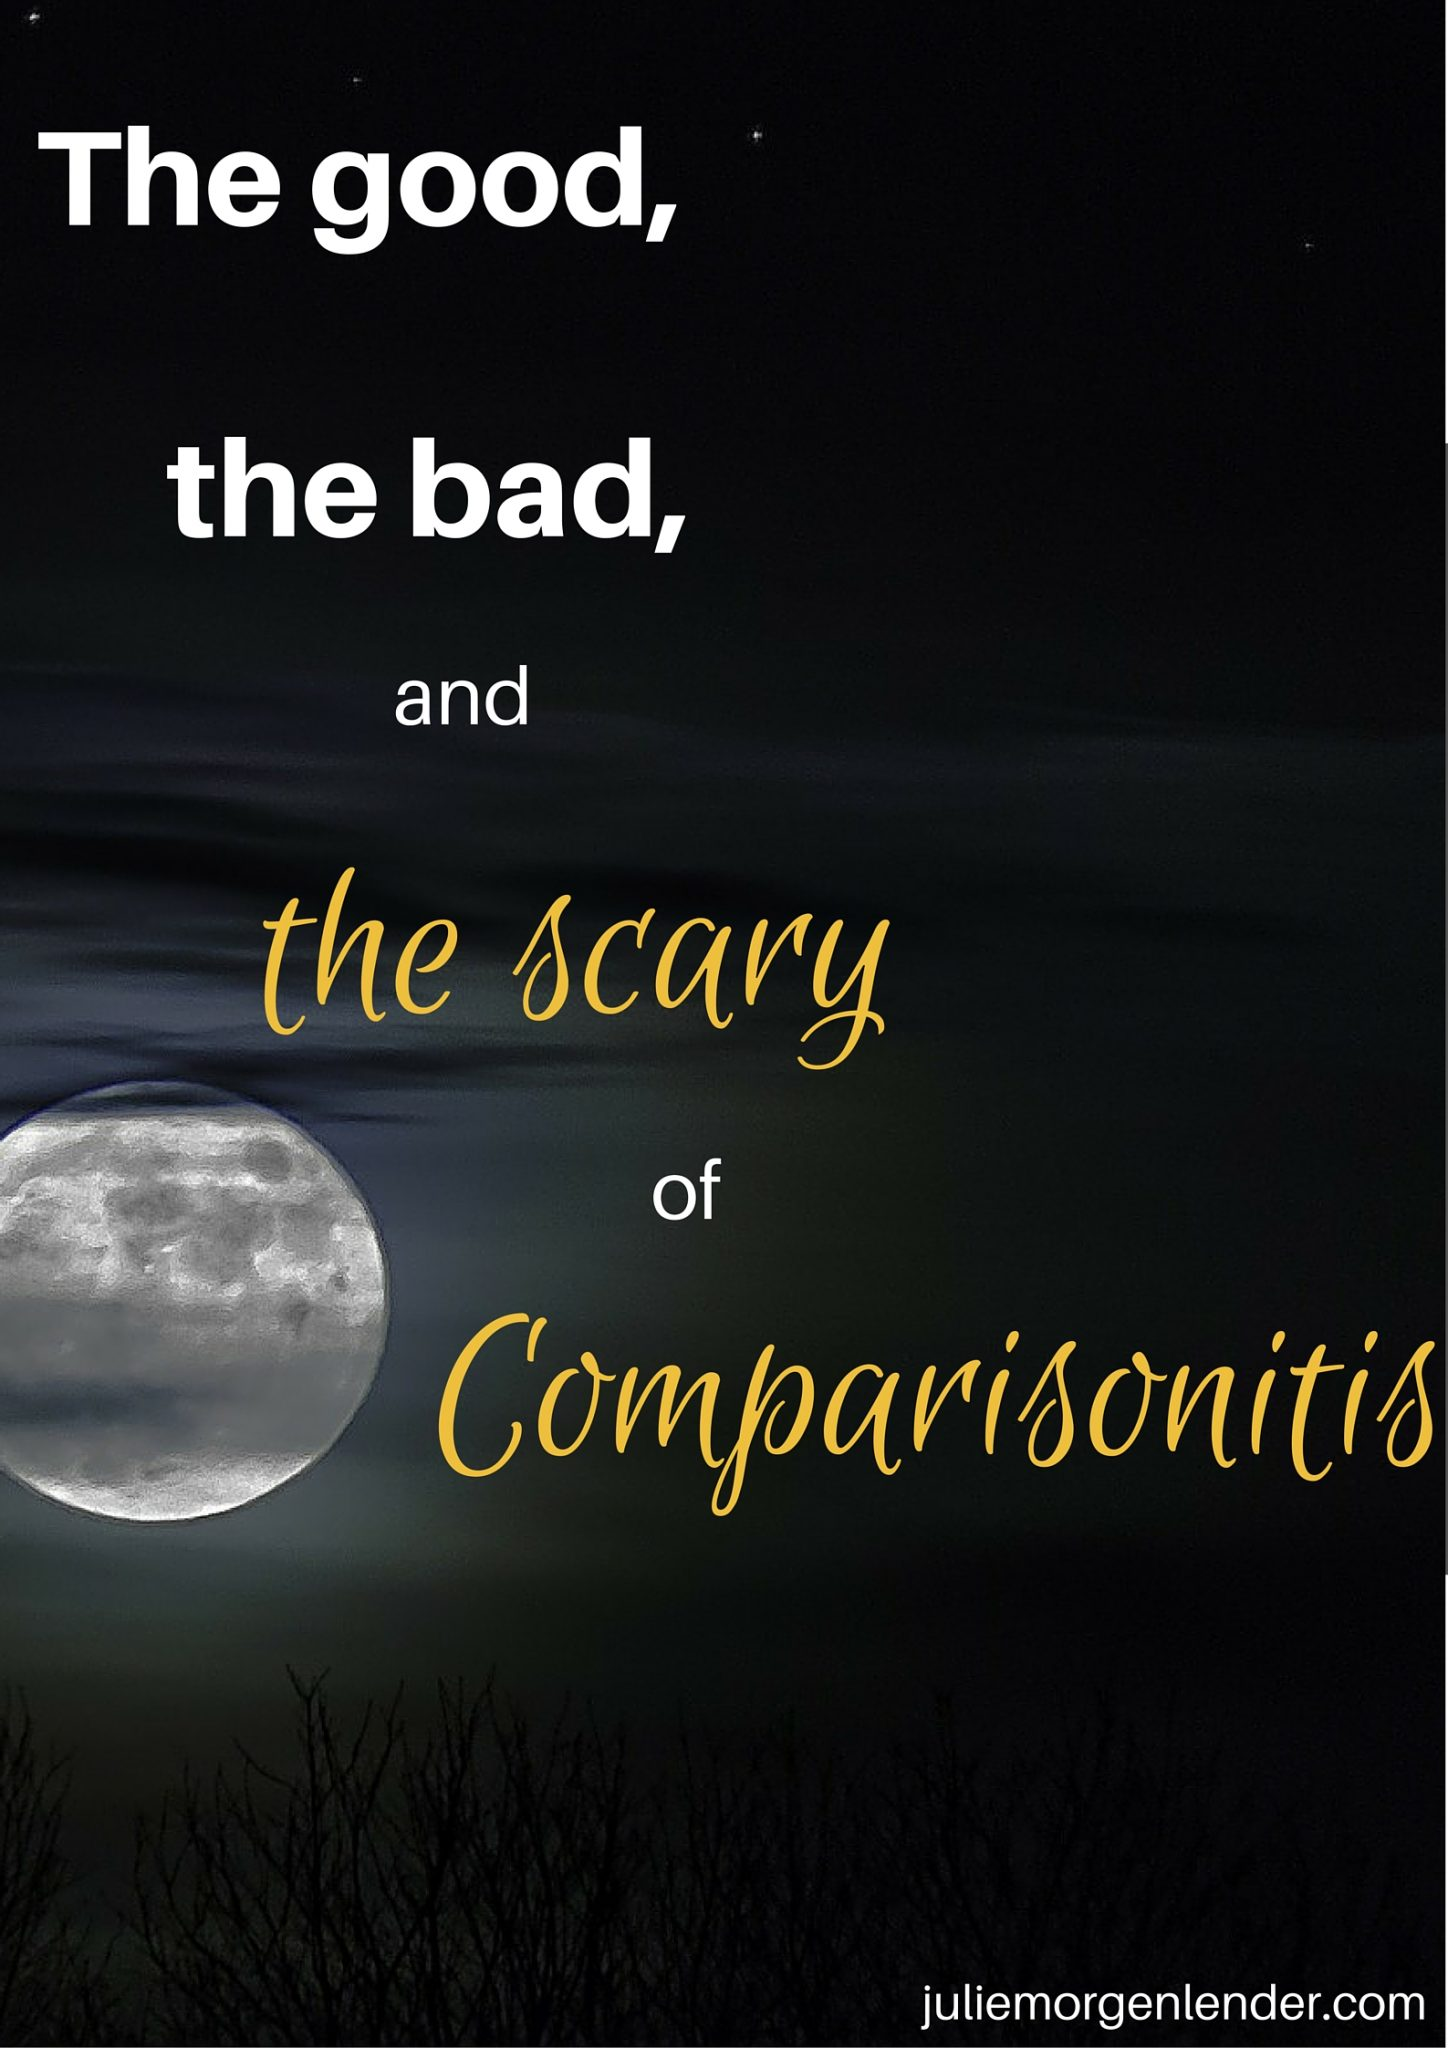 The good, the bad, and the scary of comparisonitis